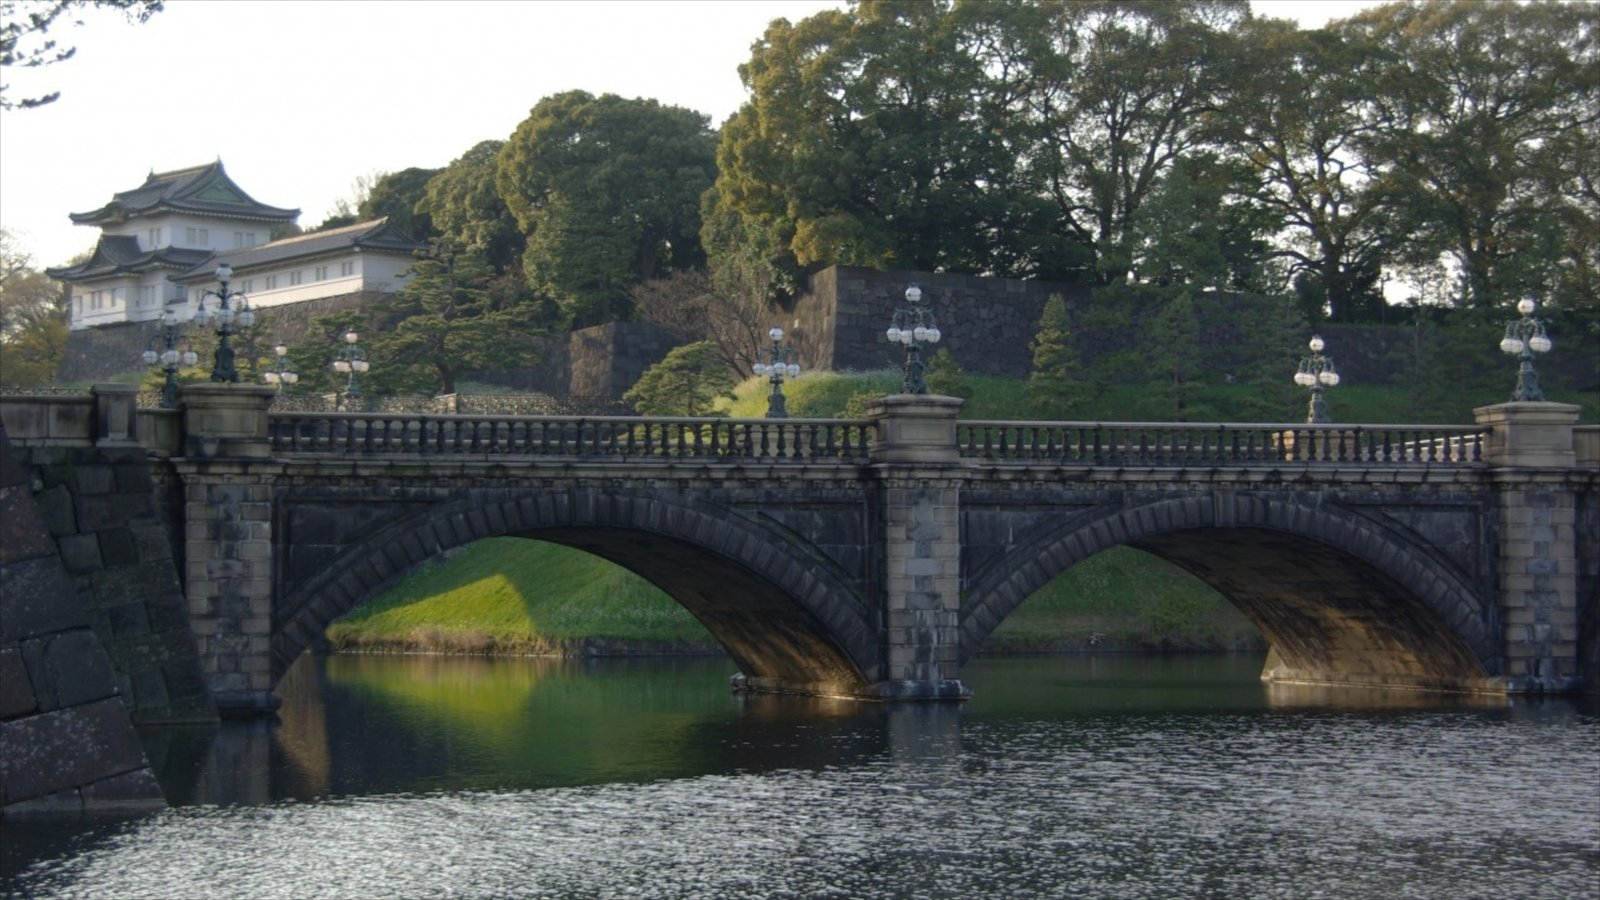 Tokyo Imperial Palace showing a lake or waterhole, a bridge and heritage elements